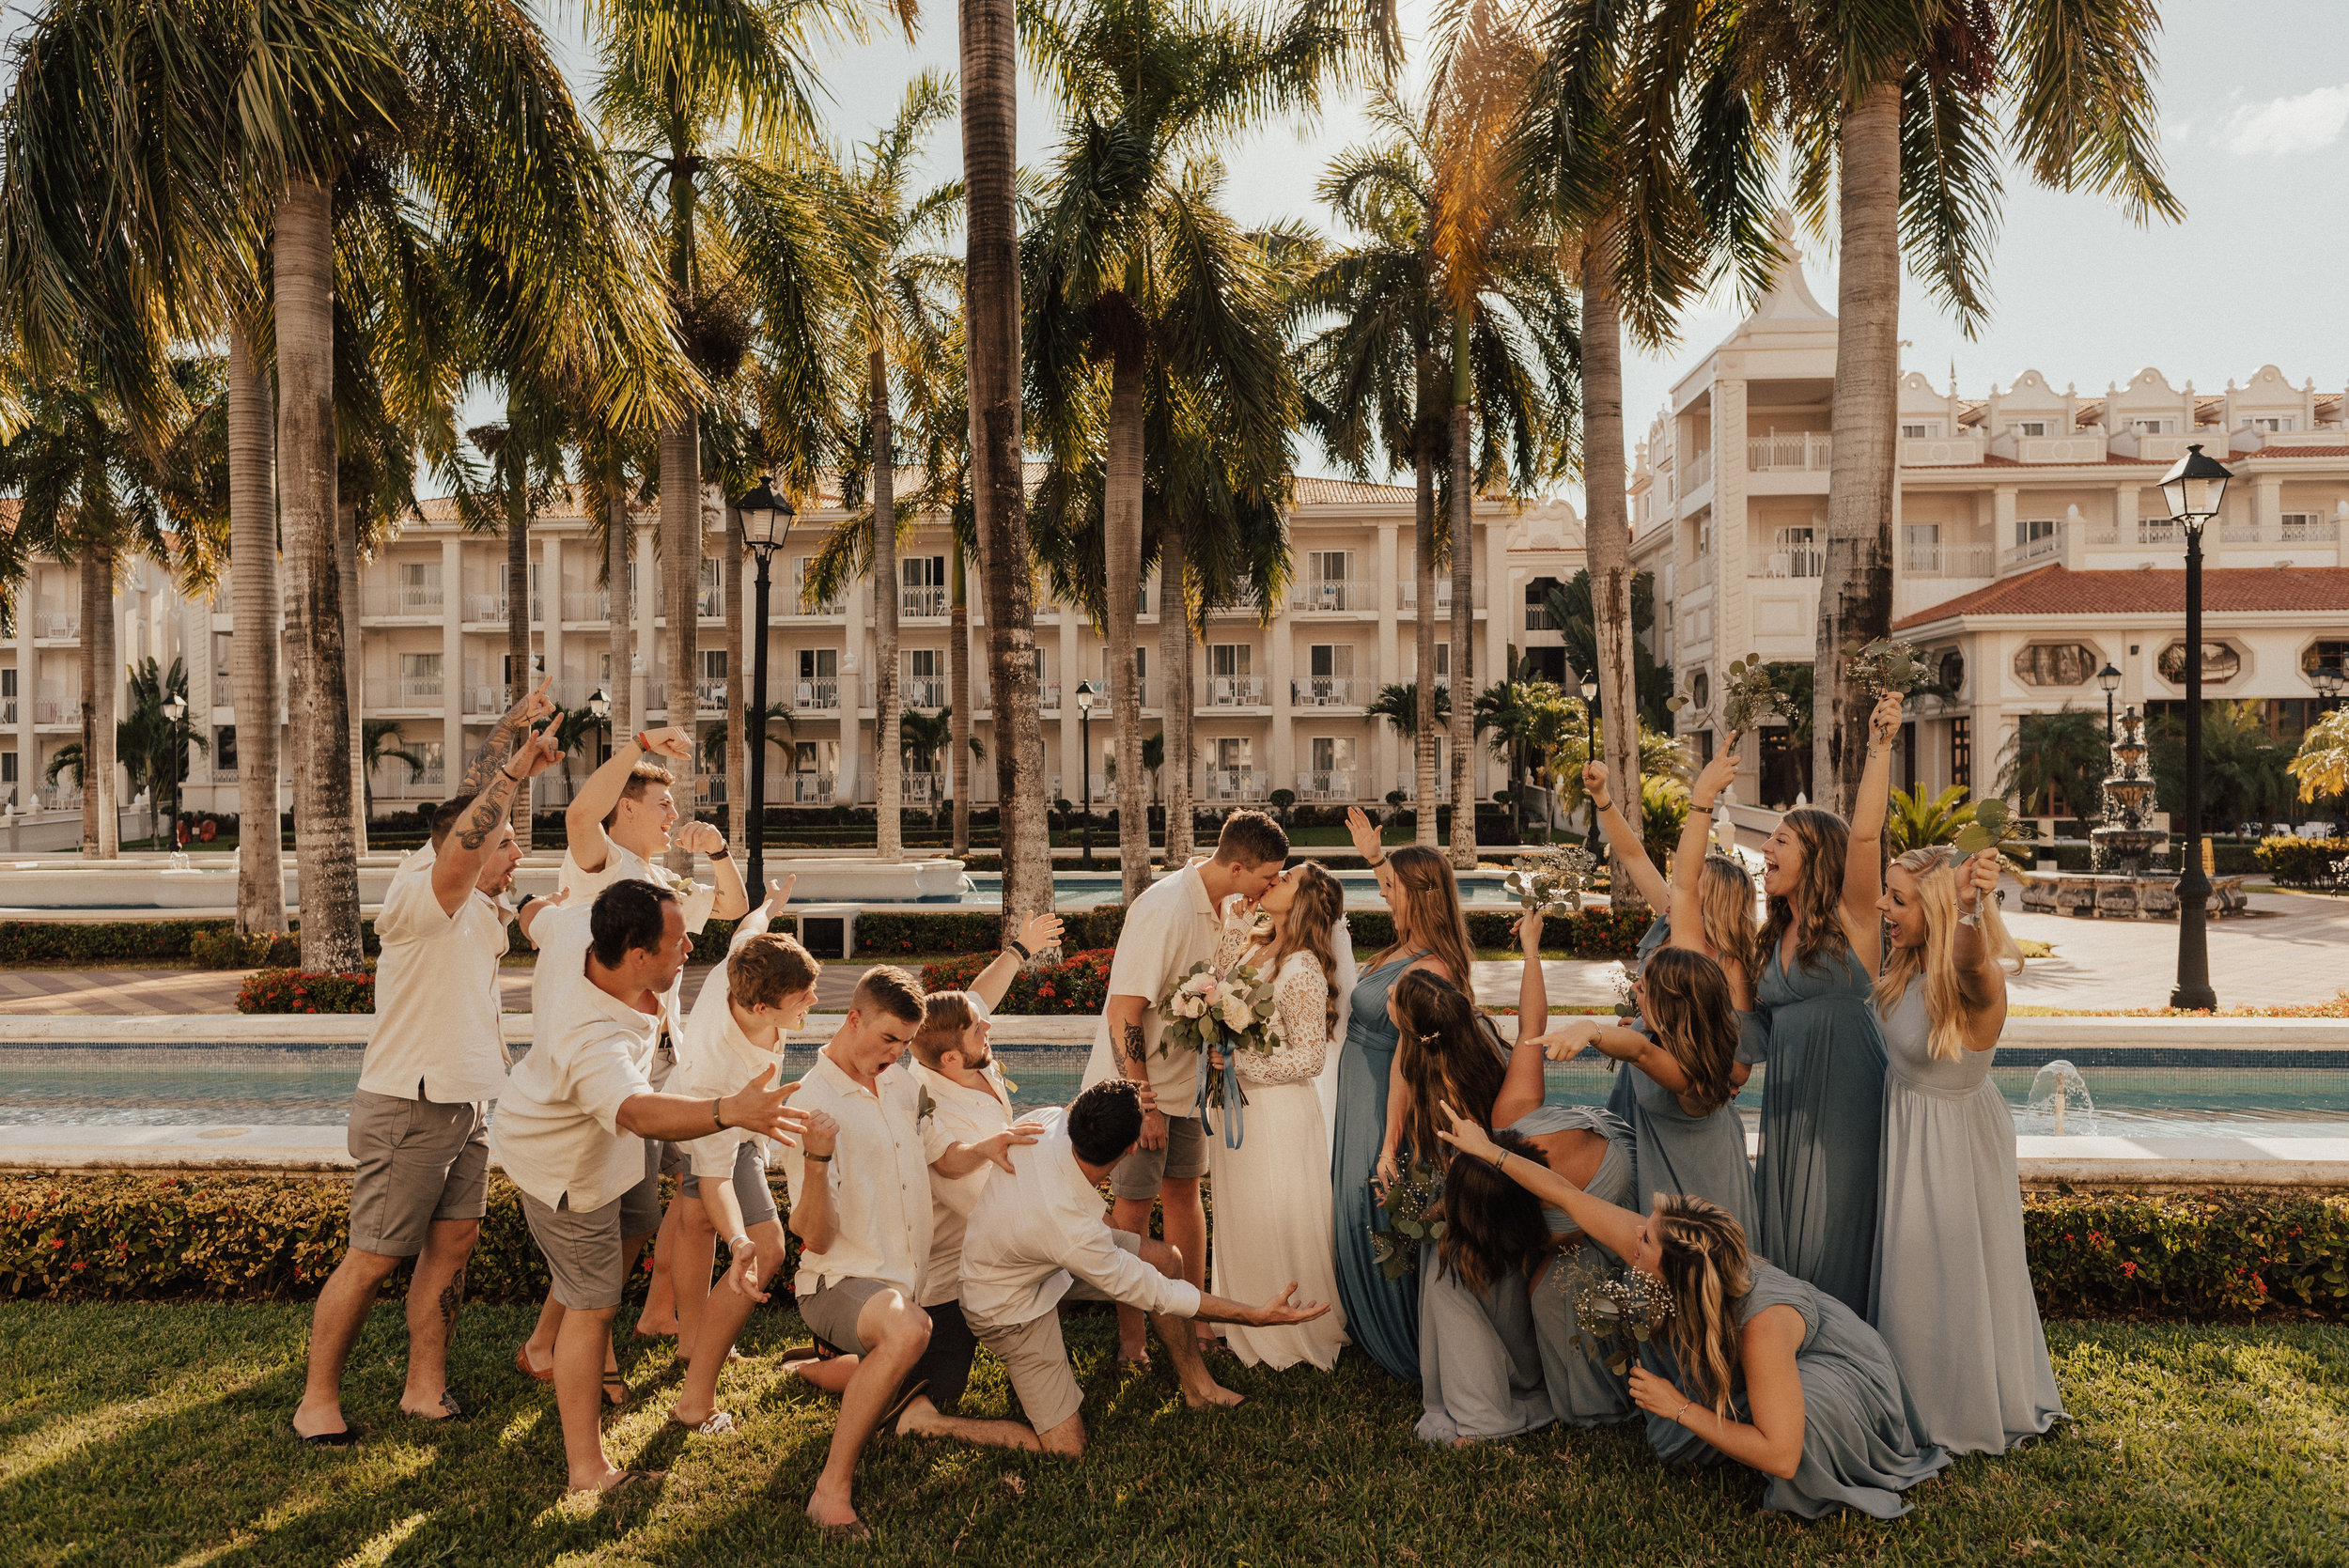 WYATT + BROOKE // MEXICO DESTINATION WEDDING